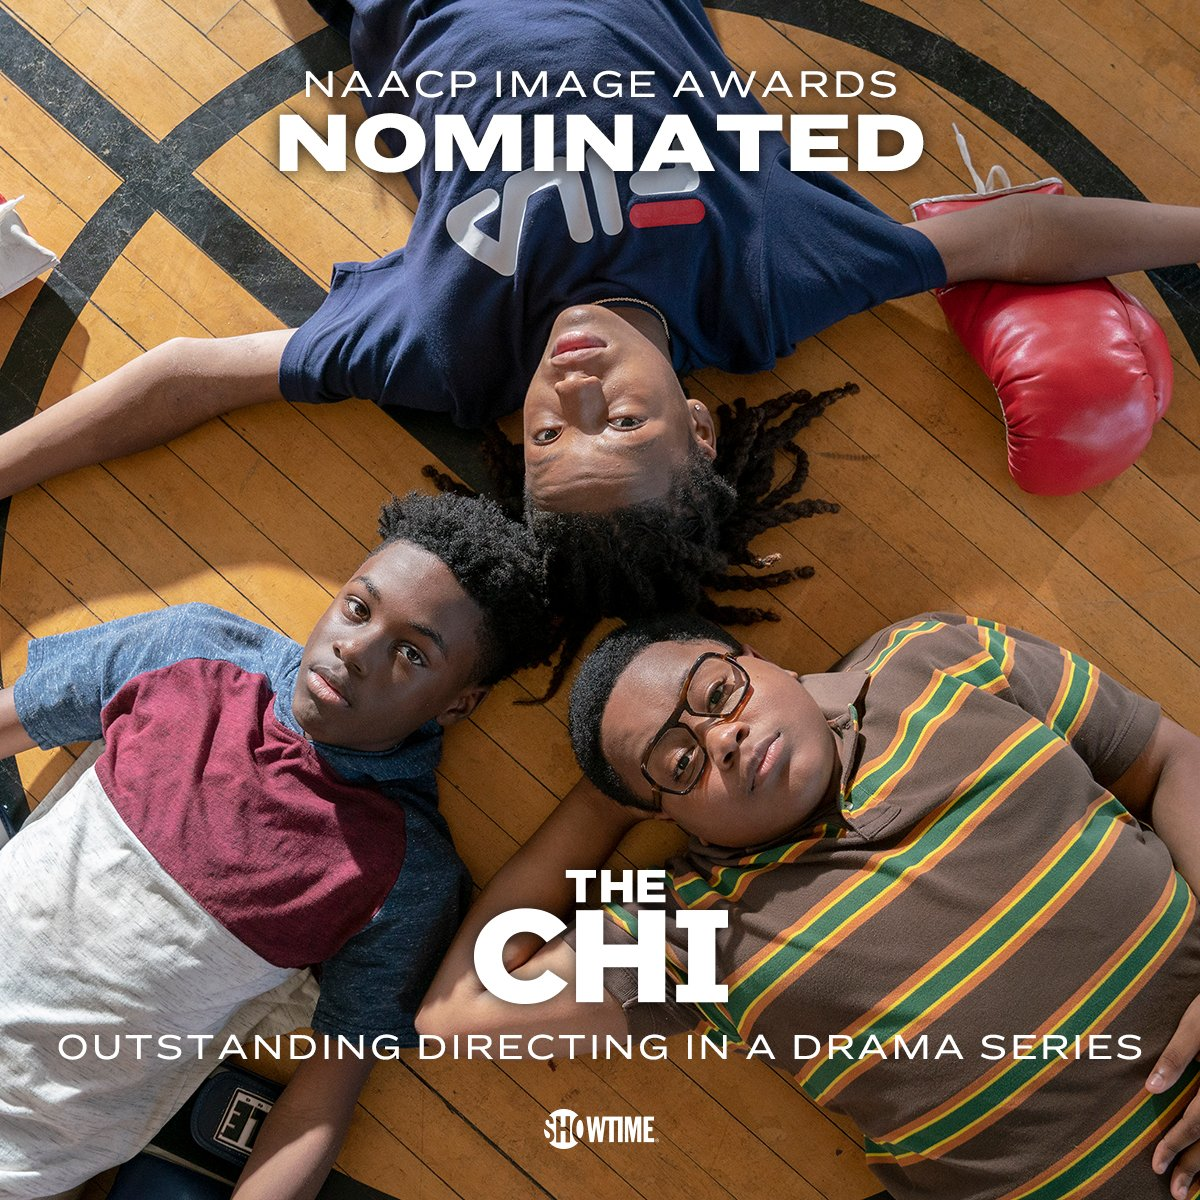 Real recognize real. Congrats to #TheChi fam on 2 #NAACPImageAwards nominations! 🙌